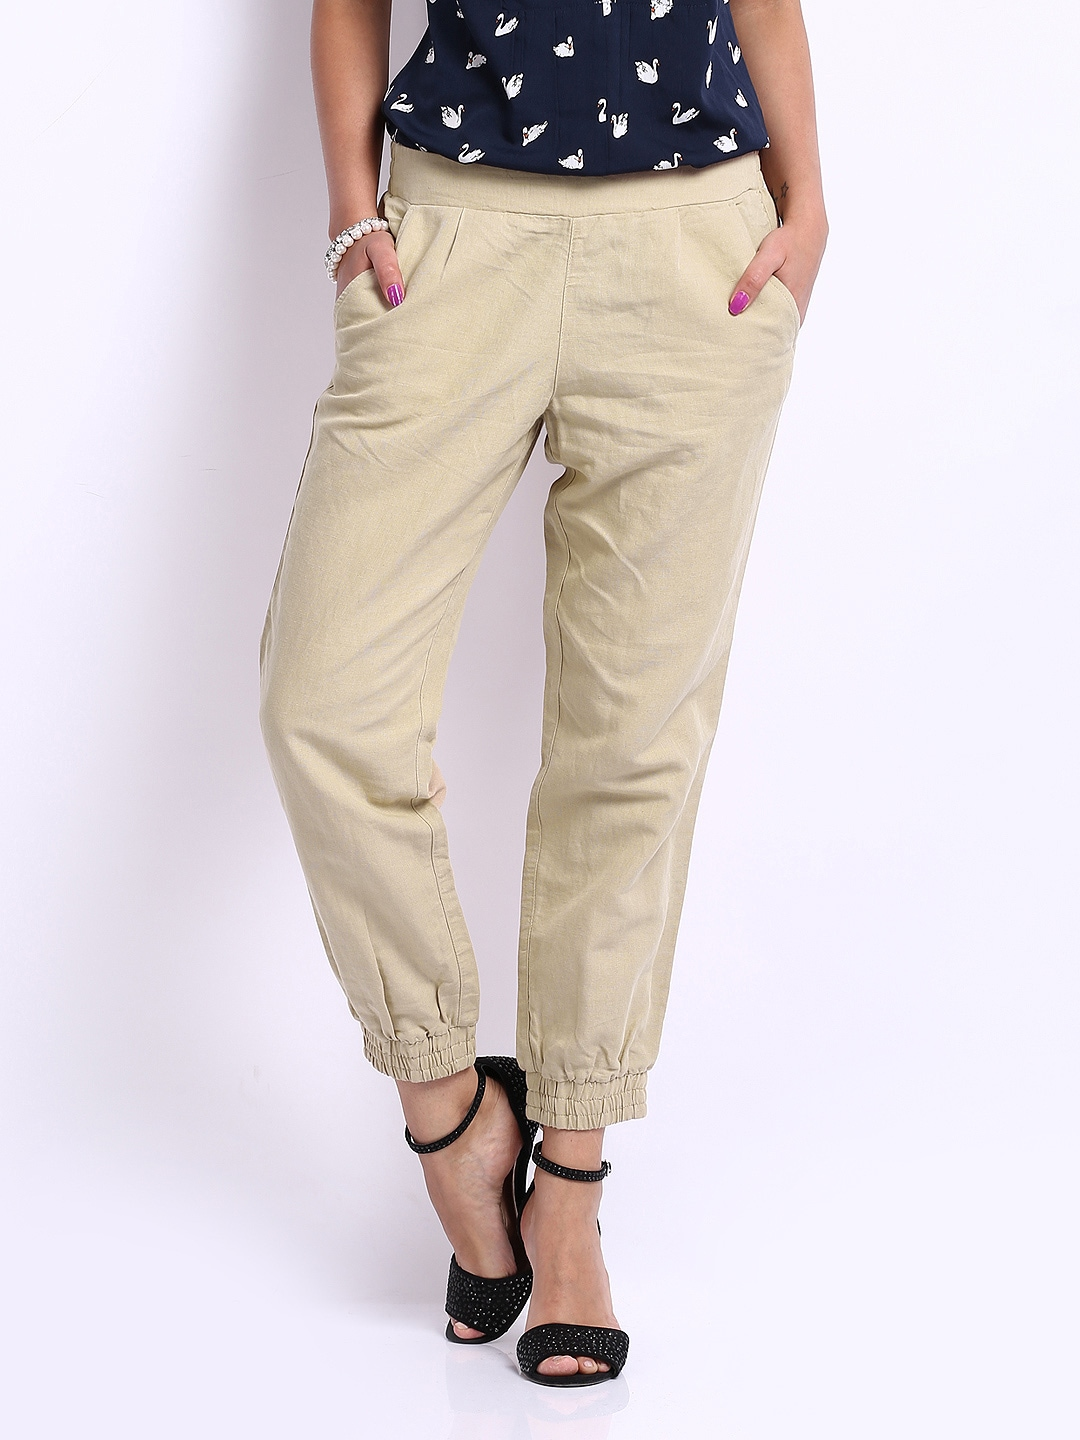 United Colors of Benetton Women Beige Linen Blend Ankle Length Trousers